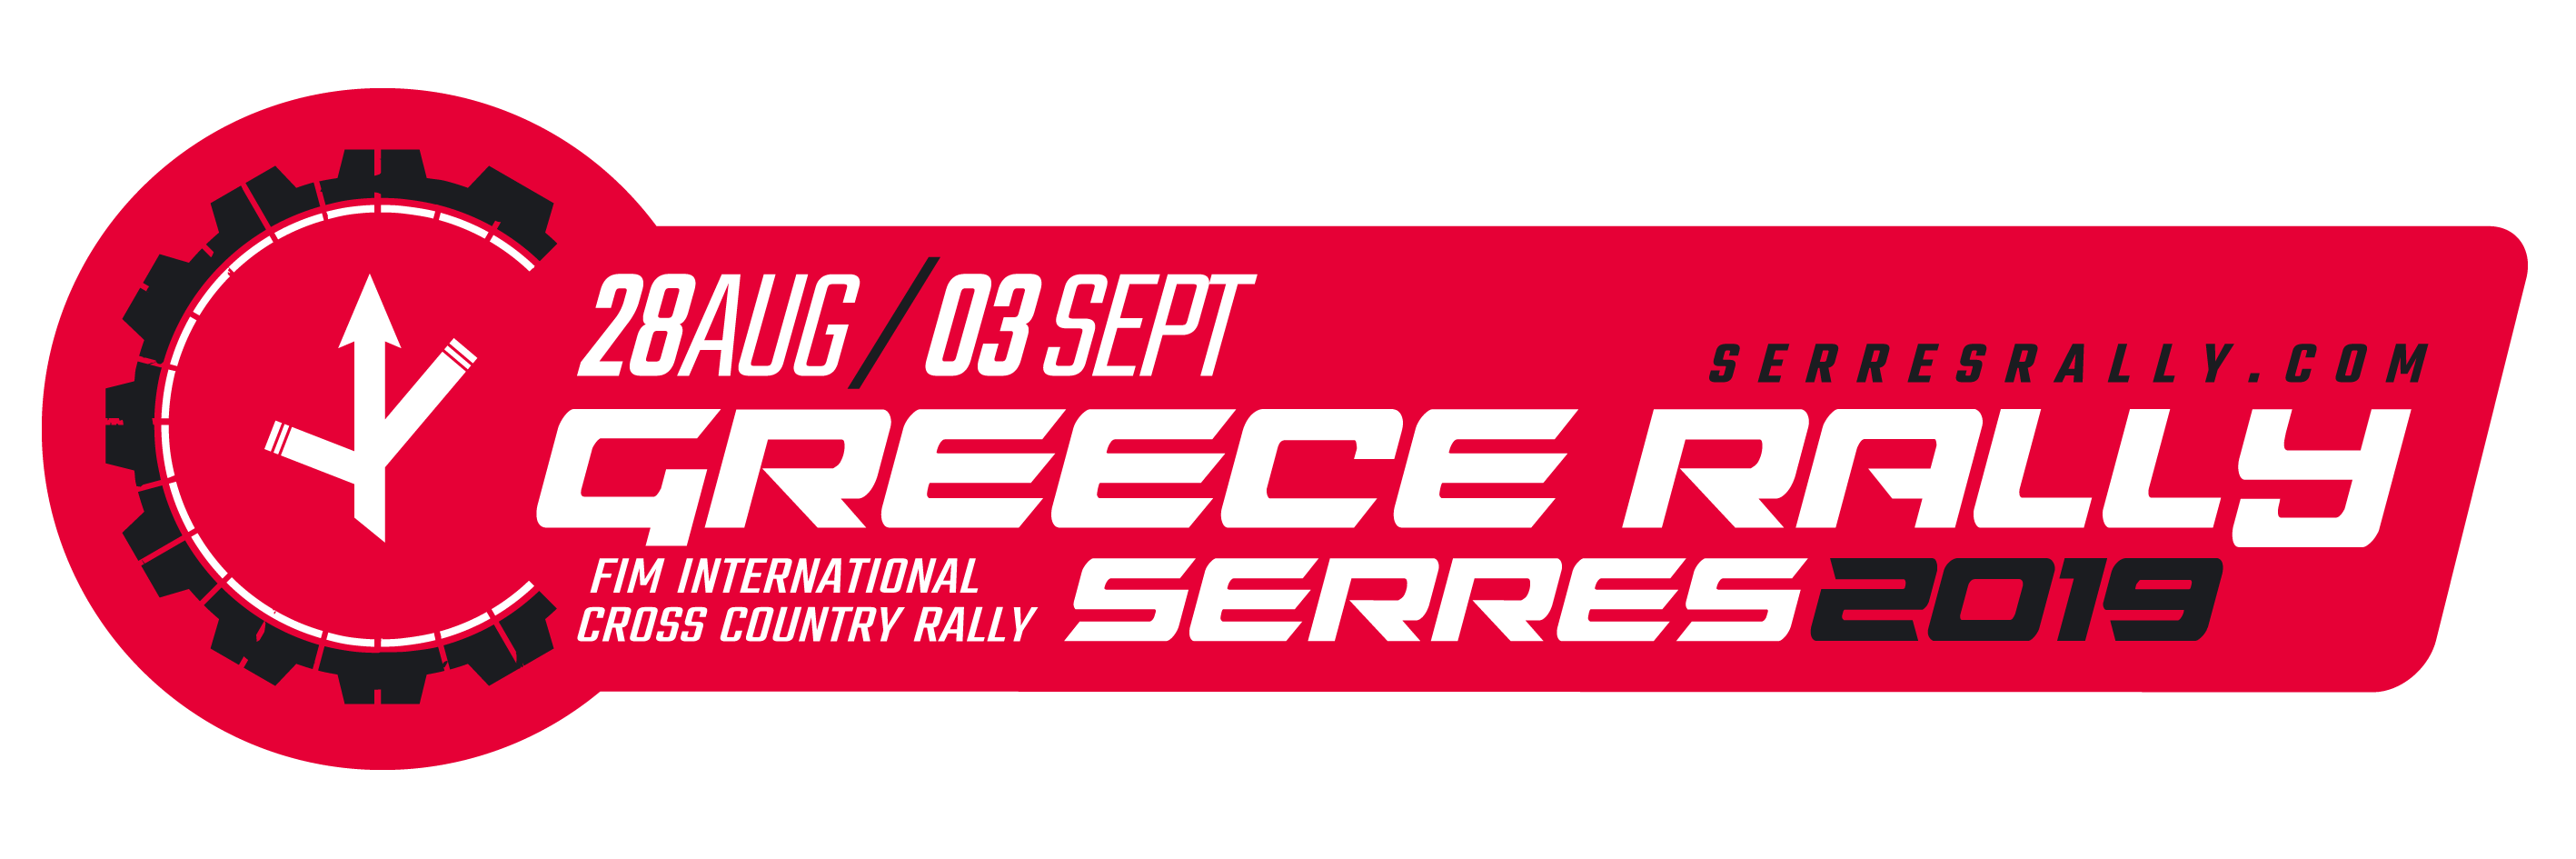 logo GR RALLY horizontal 2019 in red